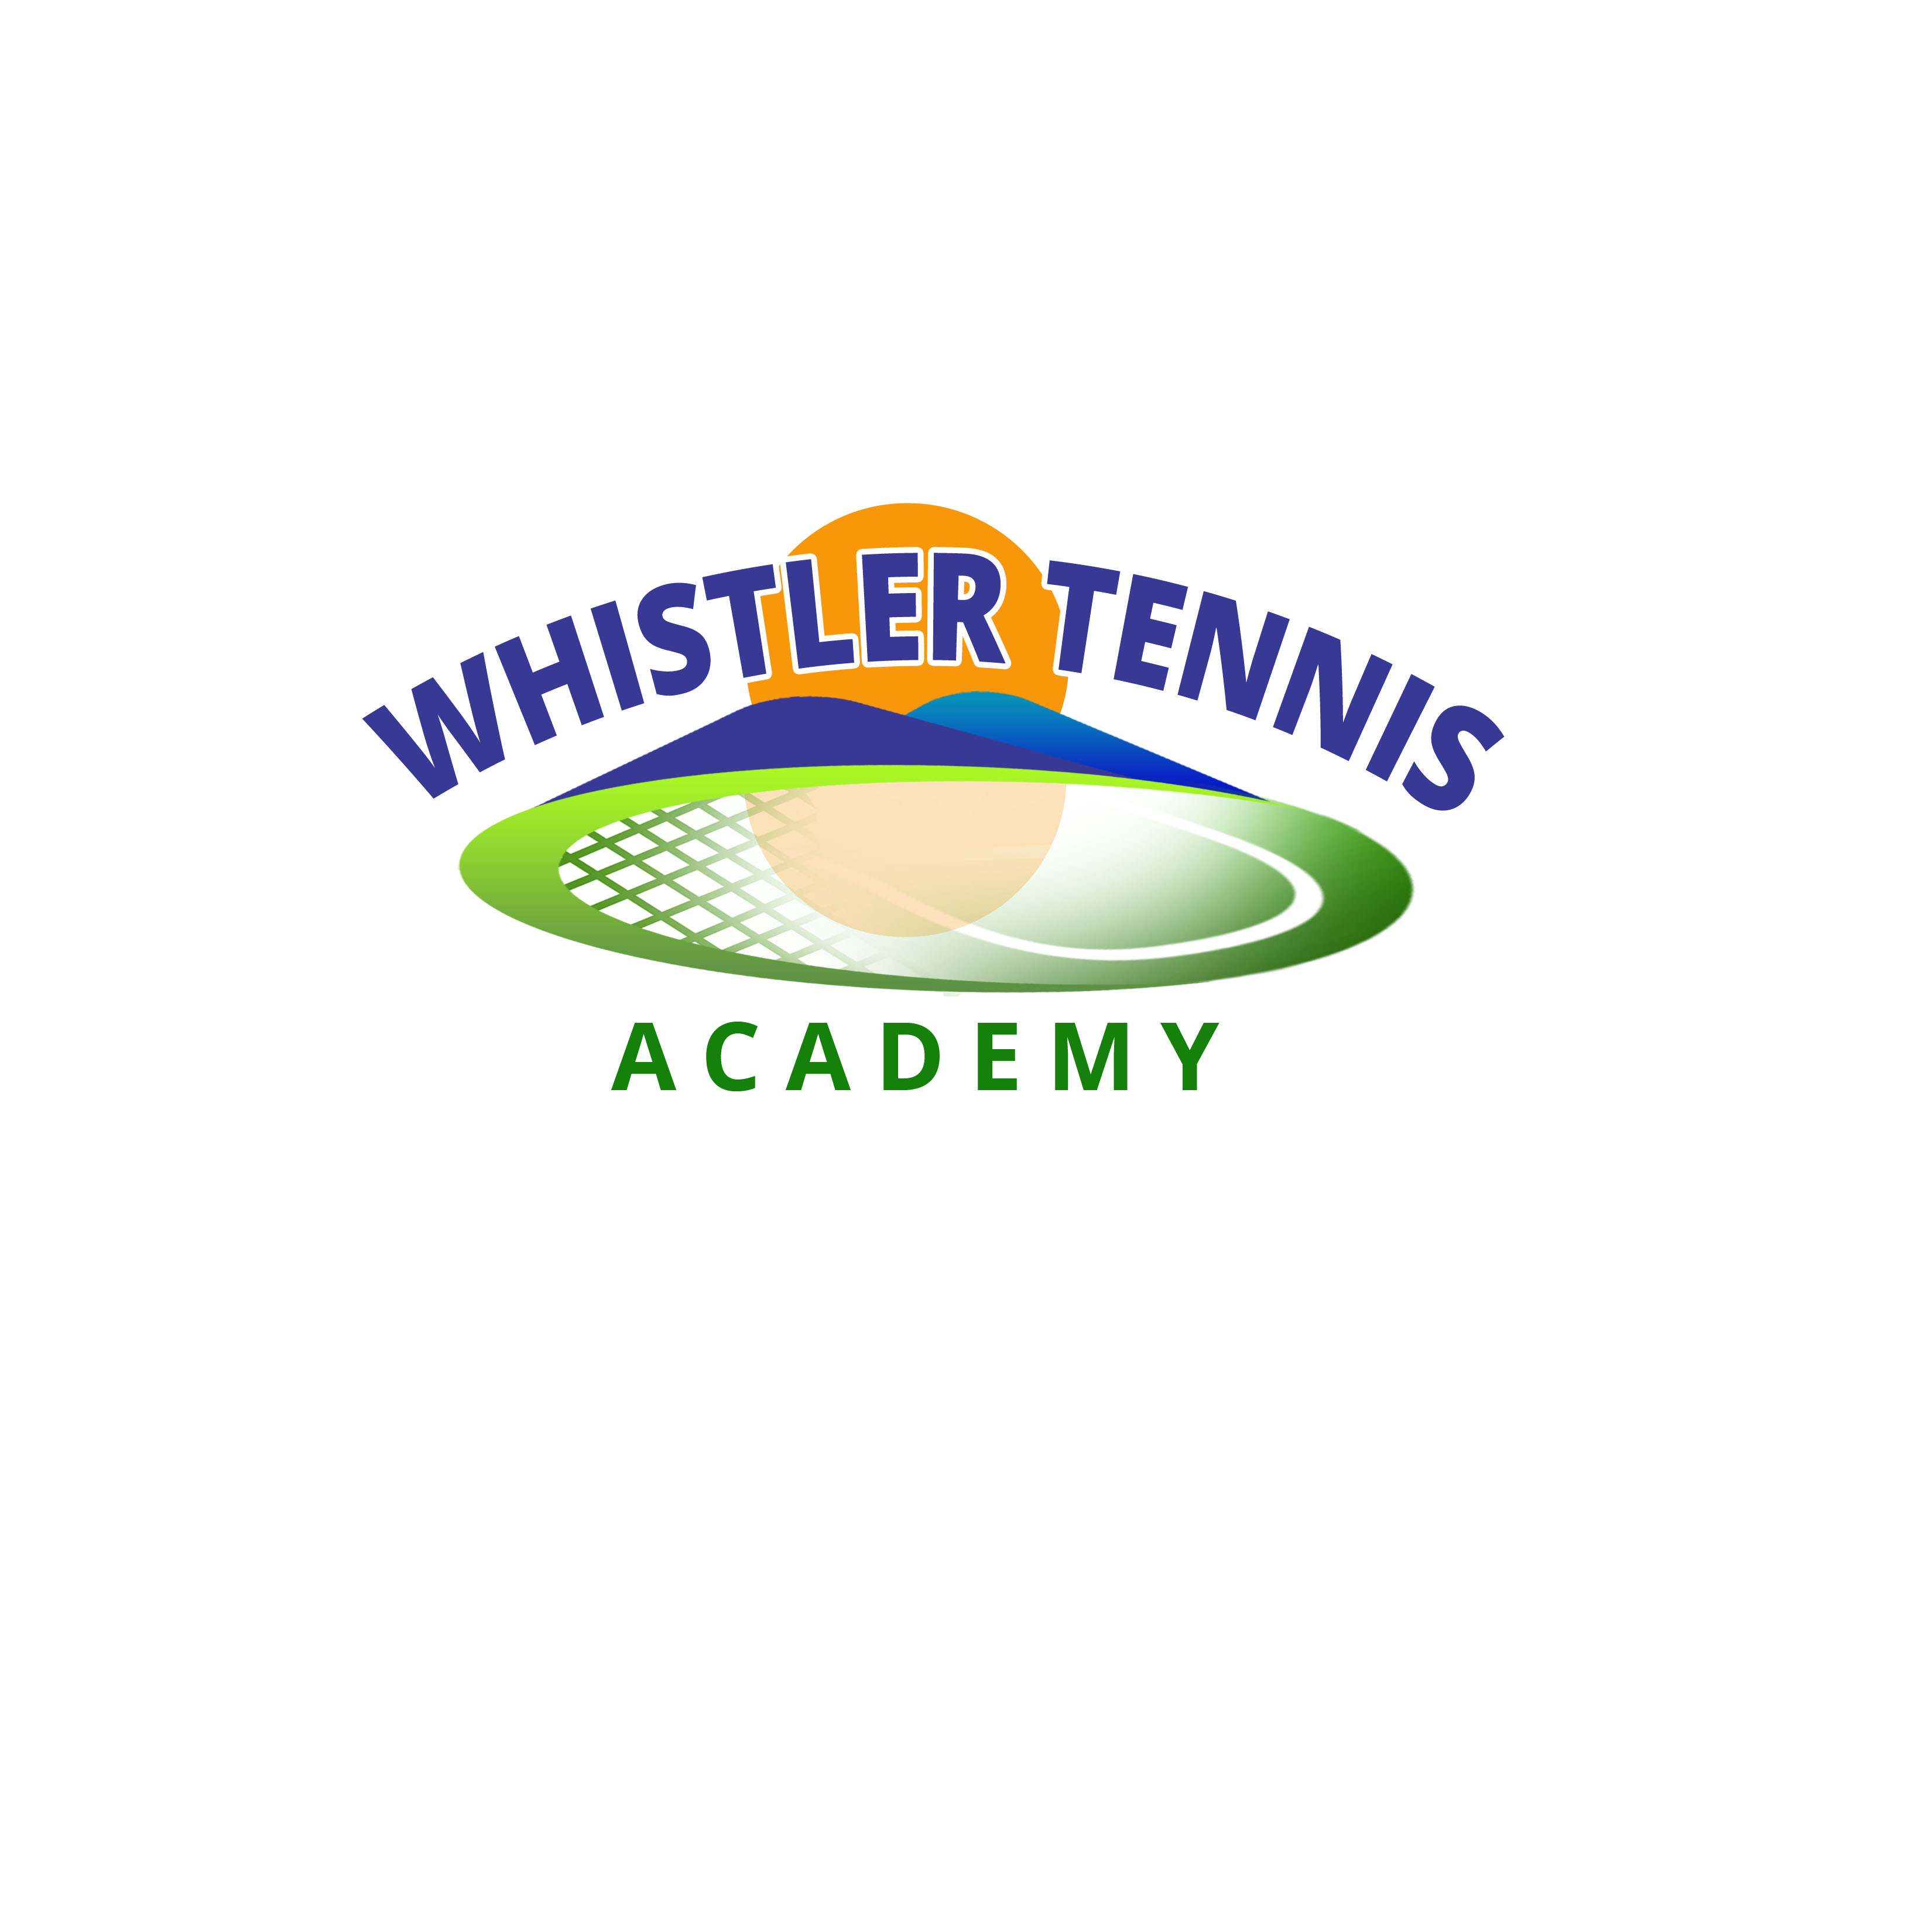 Logo Design by Allan Esclamado - Entry No. 83 in the Logo Design Contest Imaginative Logo Design for Whistler Tennis Academy.